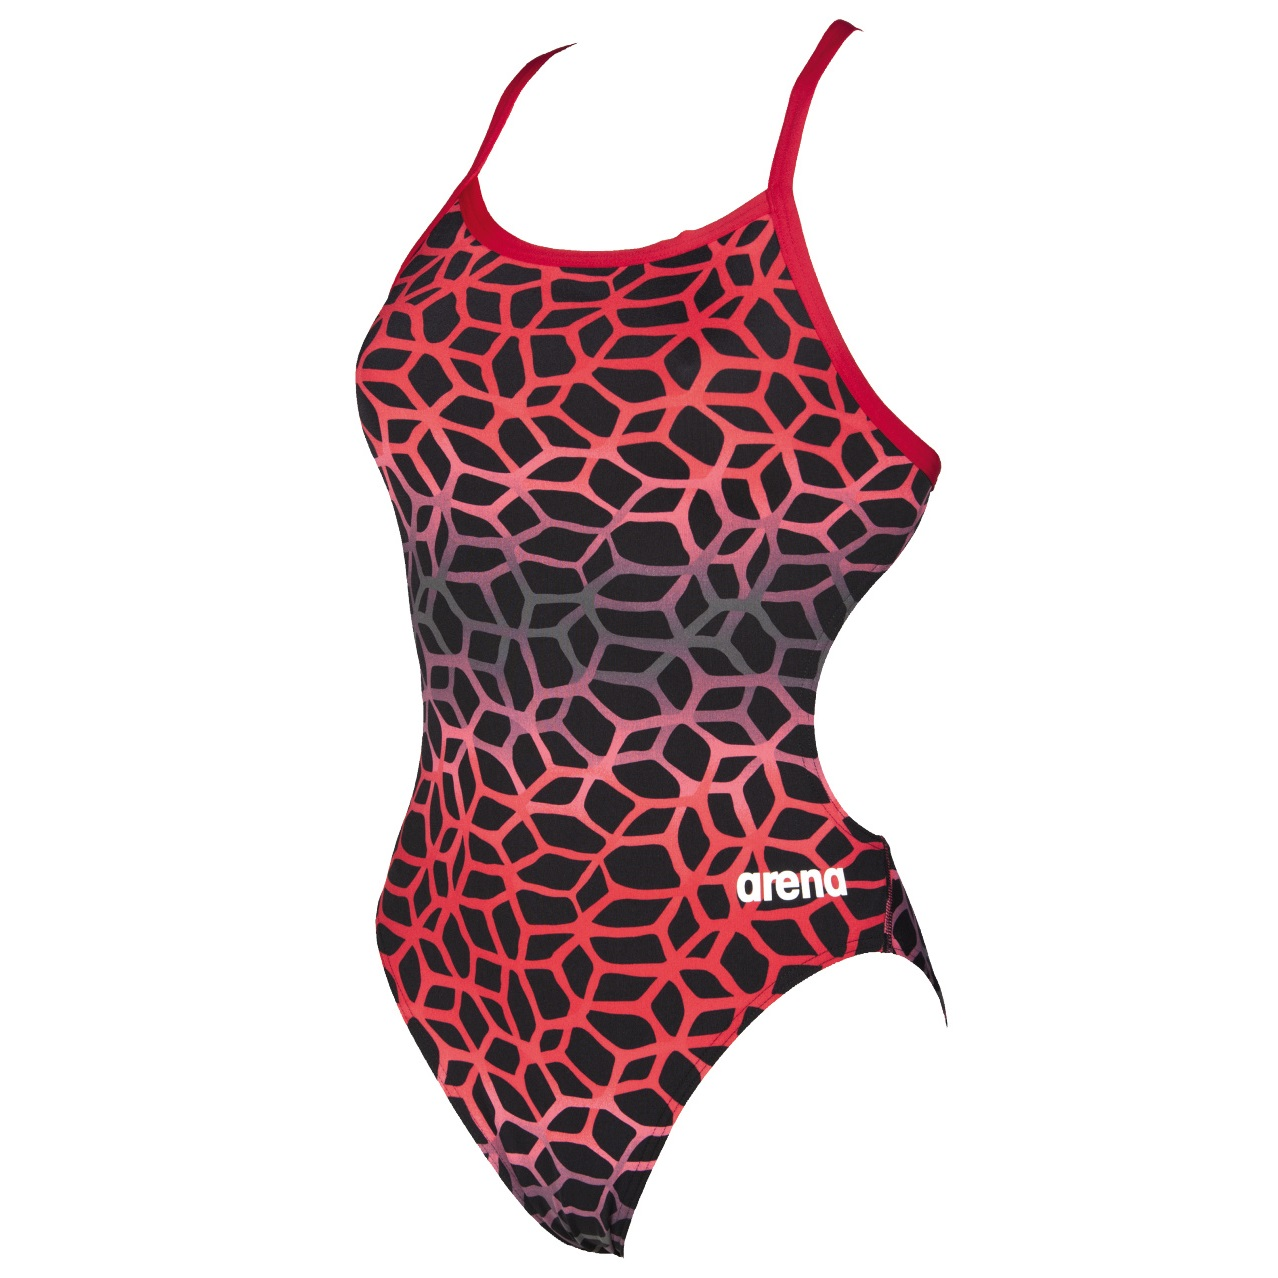 arena polycarbonite challenge back one piece red